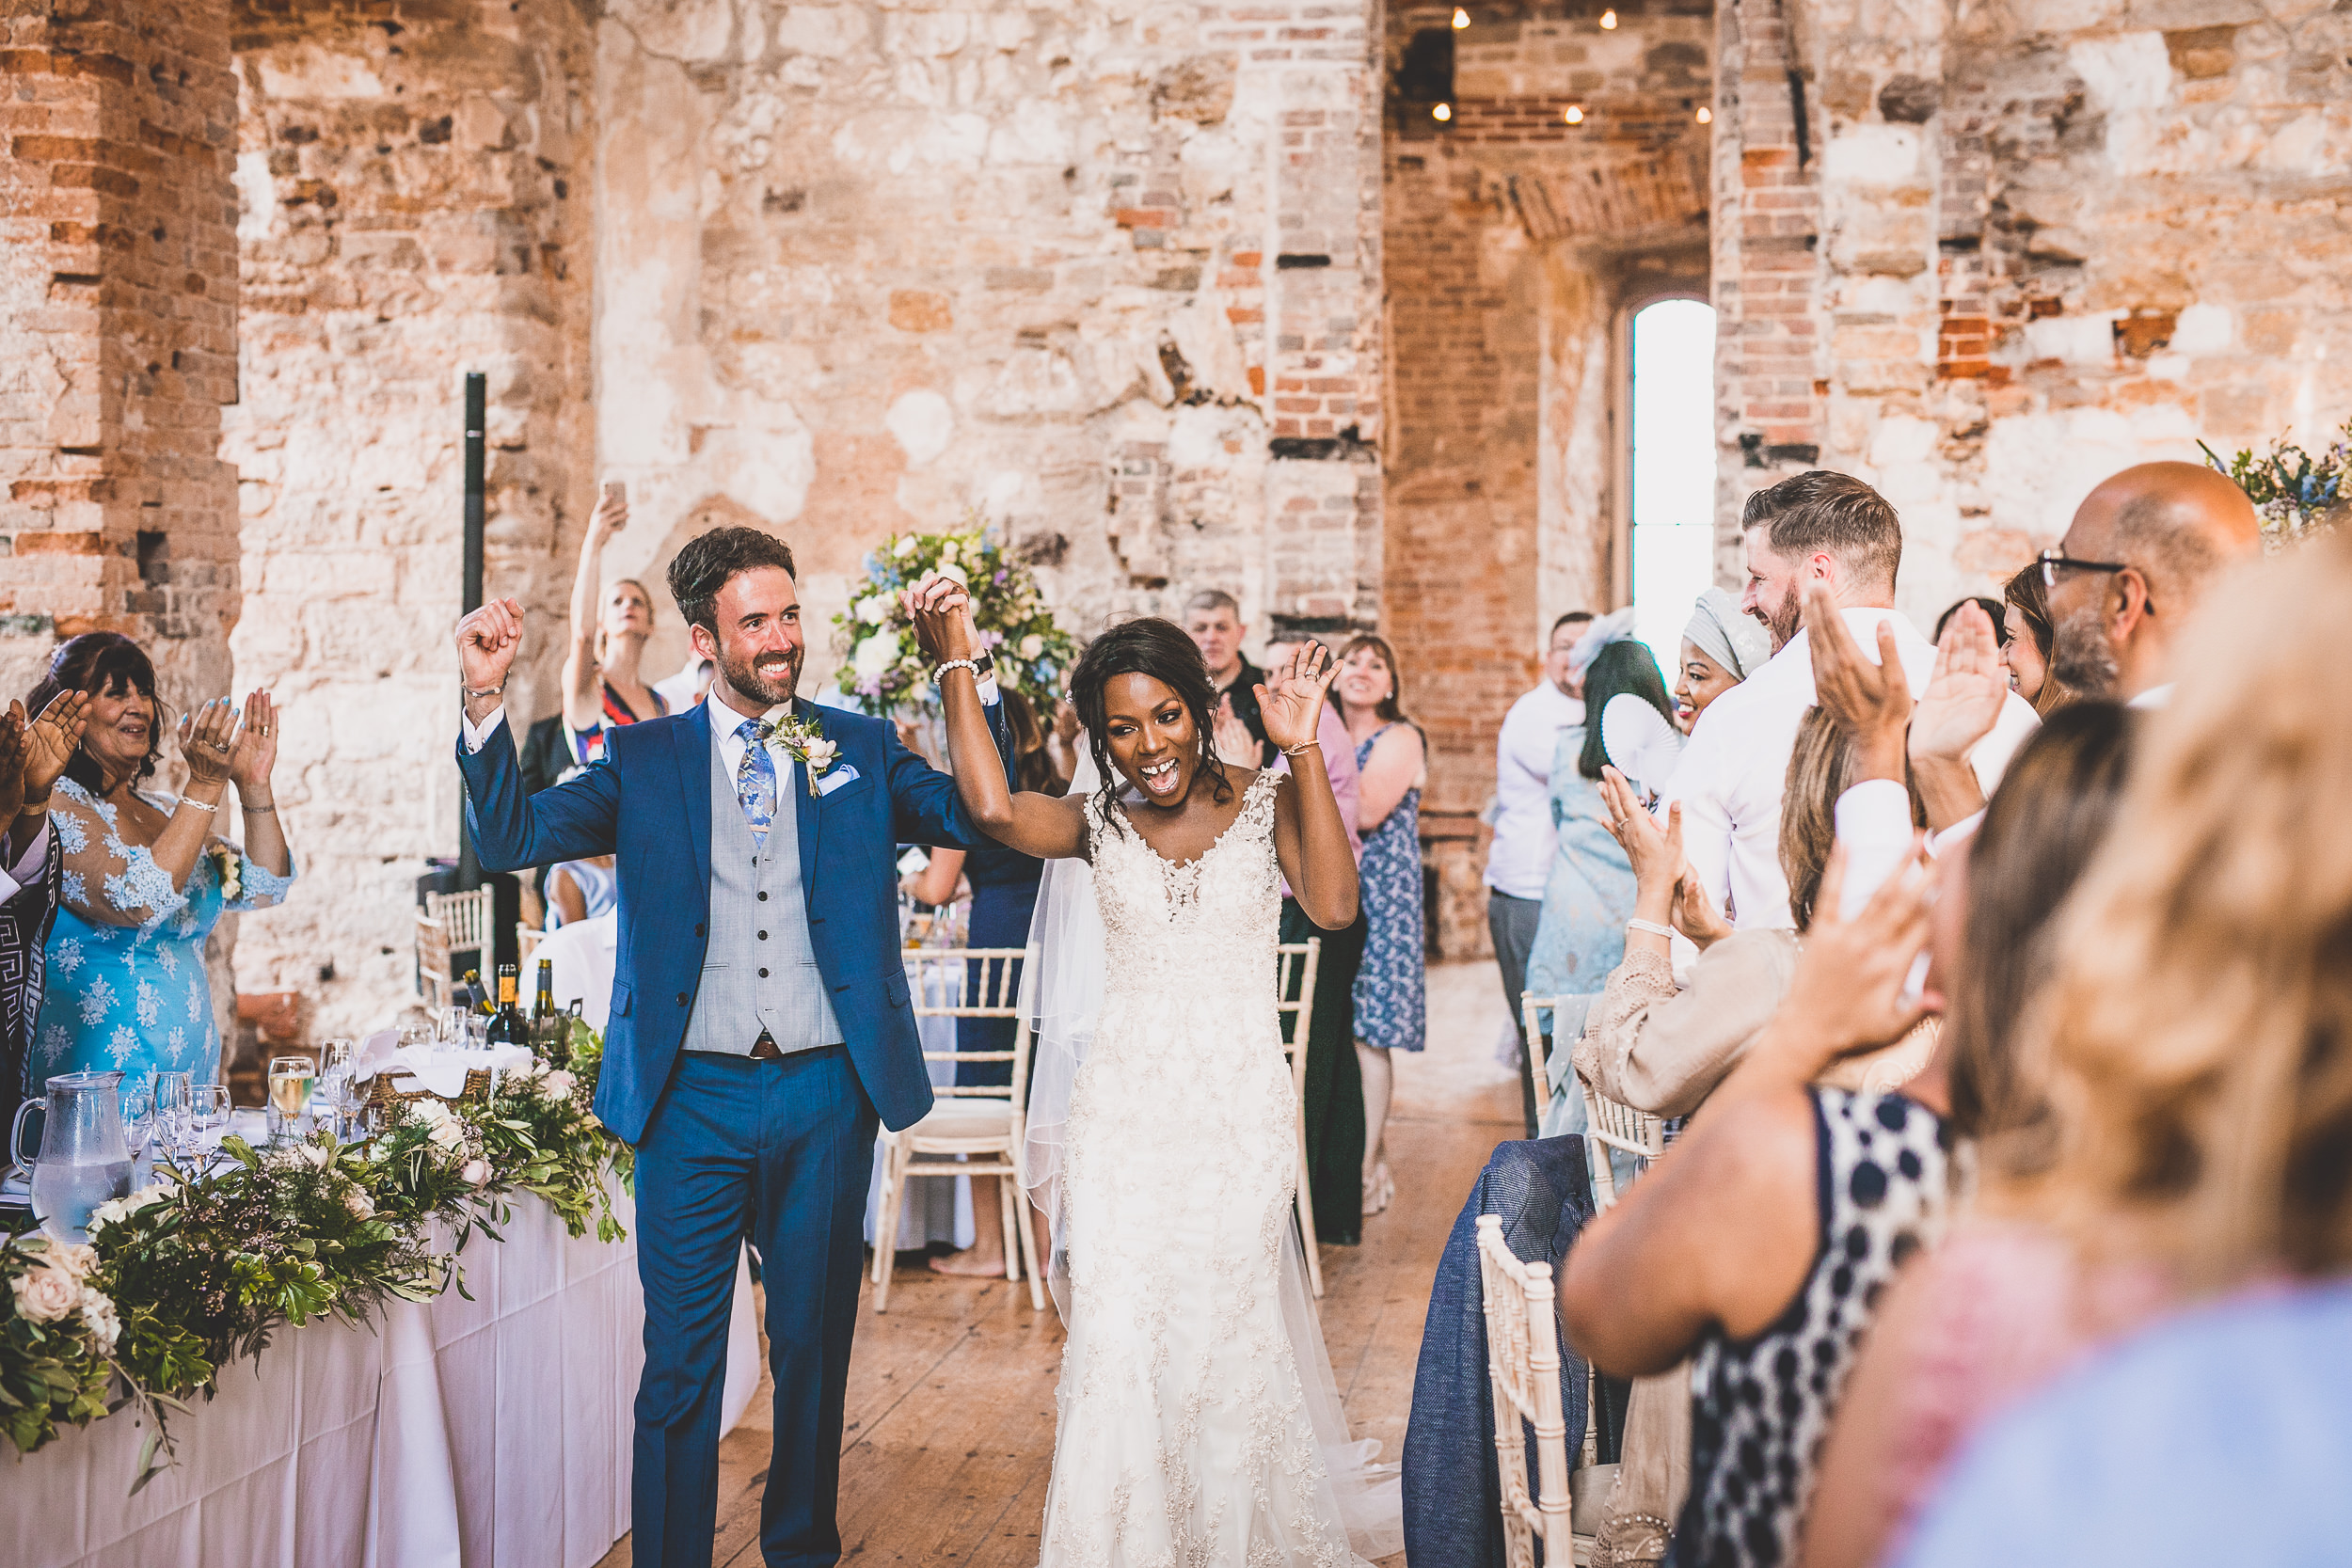 Lulworth Castle Wedding Photography | Amina & David Amina David ss 066